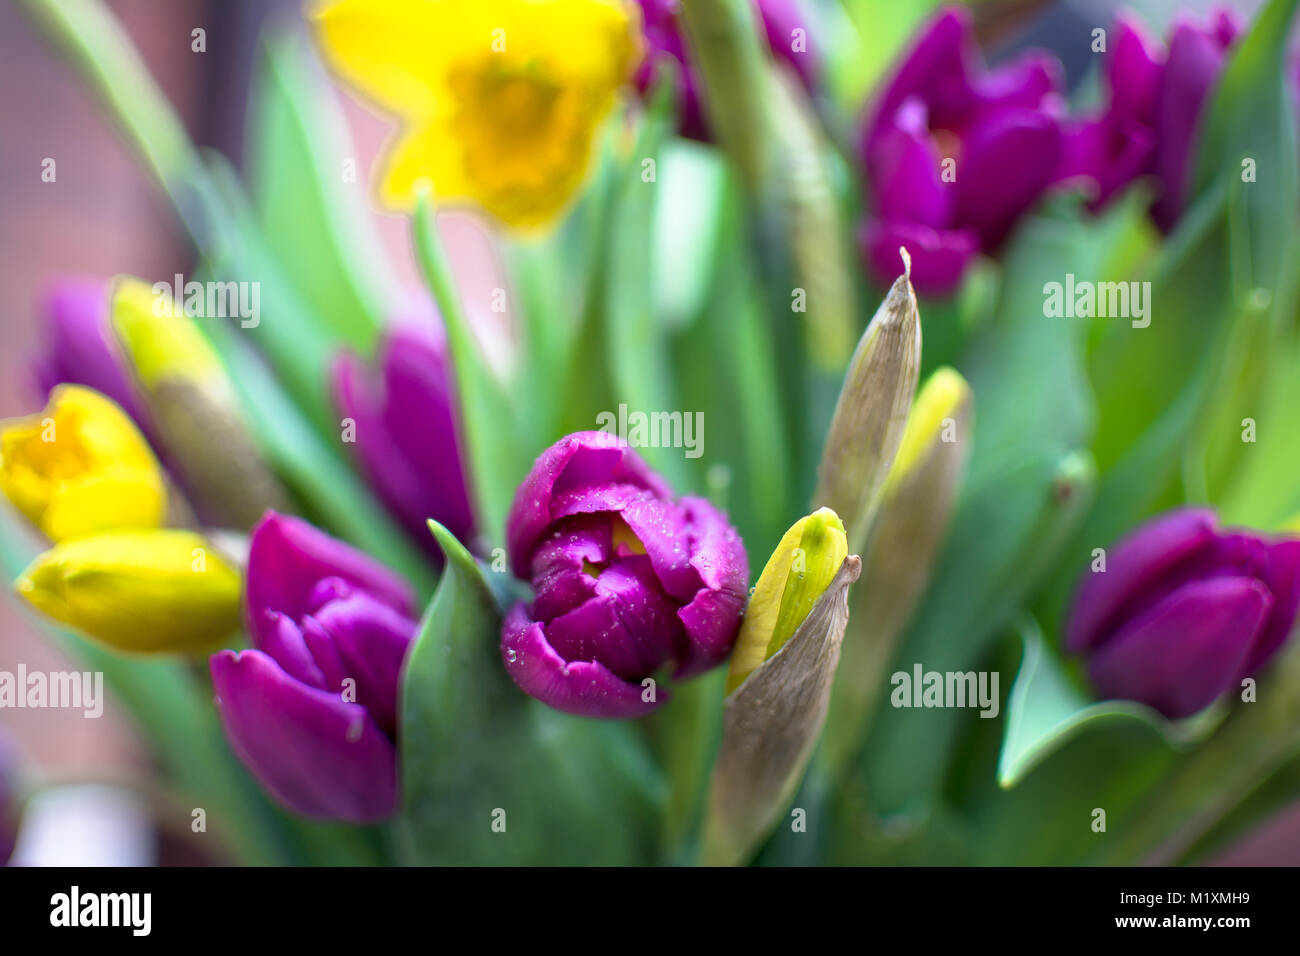 Bright Spring Flowers Tulips And Daffodils In Bloom And Bud Stock